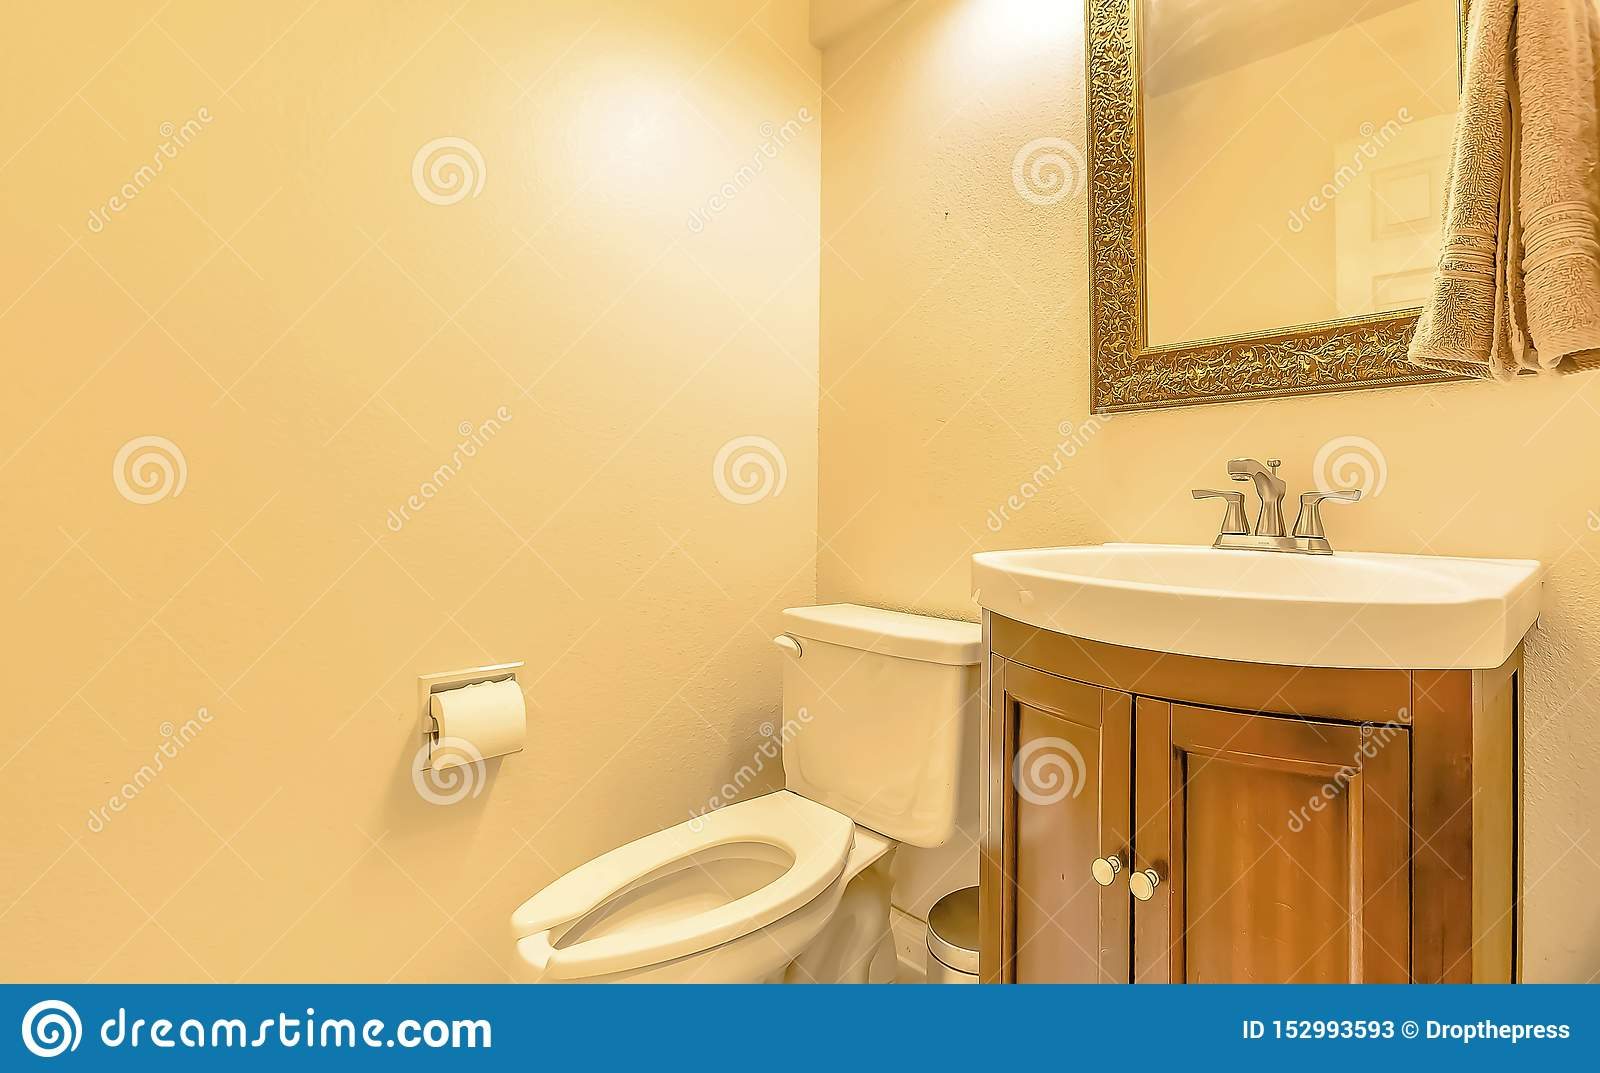 Toilet And Sink Inside The Bathroom Of A House With Cream Colored Wall Stock Image Image Of Architectural Clean 152993593